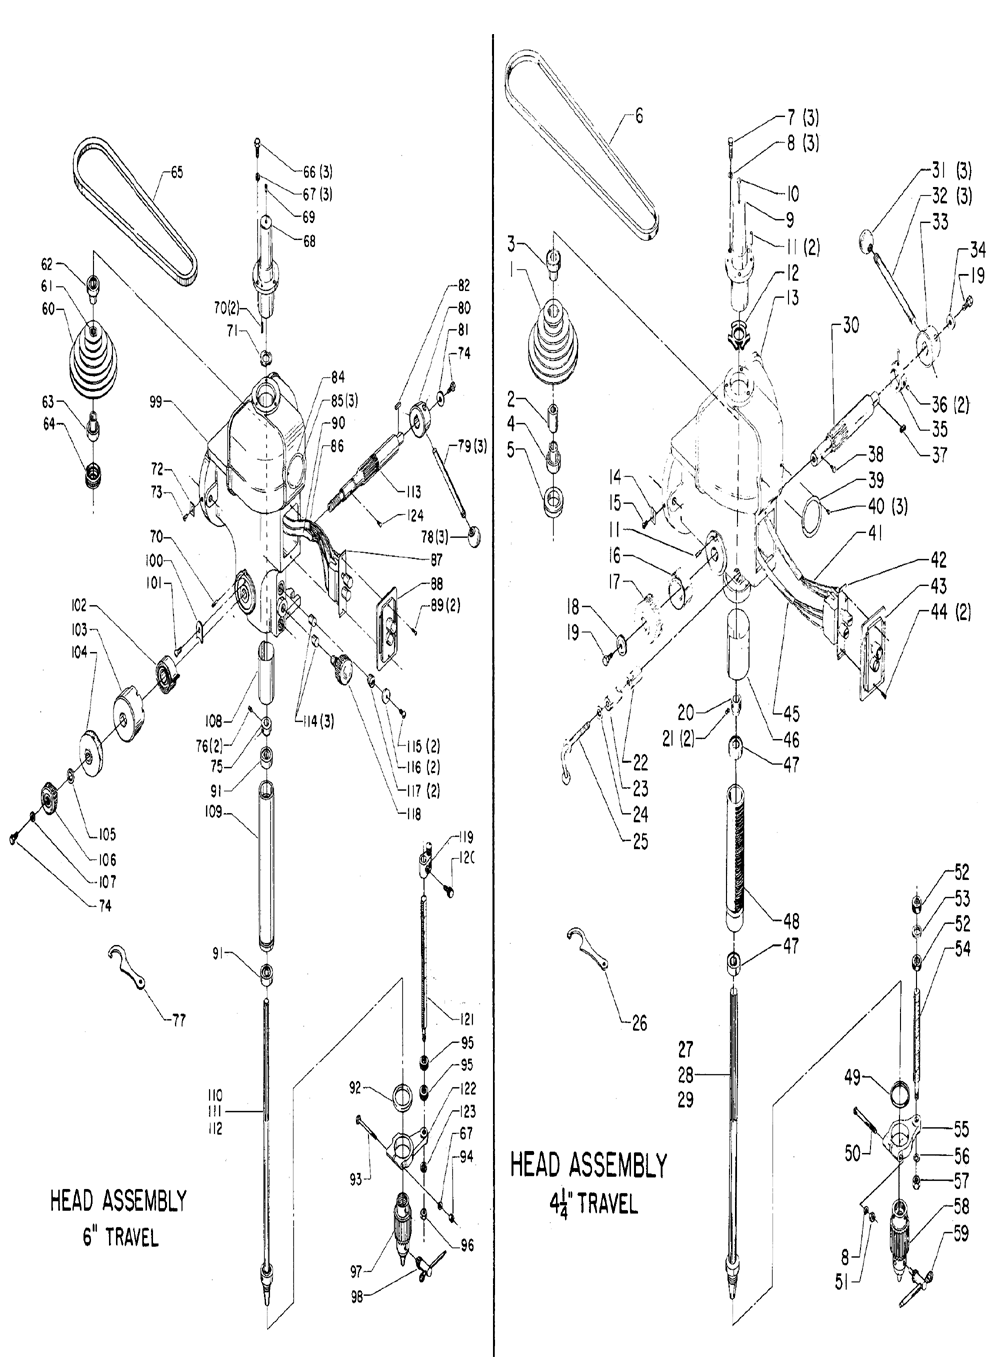 Download Diagram Chevy 6 0 Pulley Diagram Html Full Version Hd Quality Diagram Html